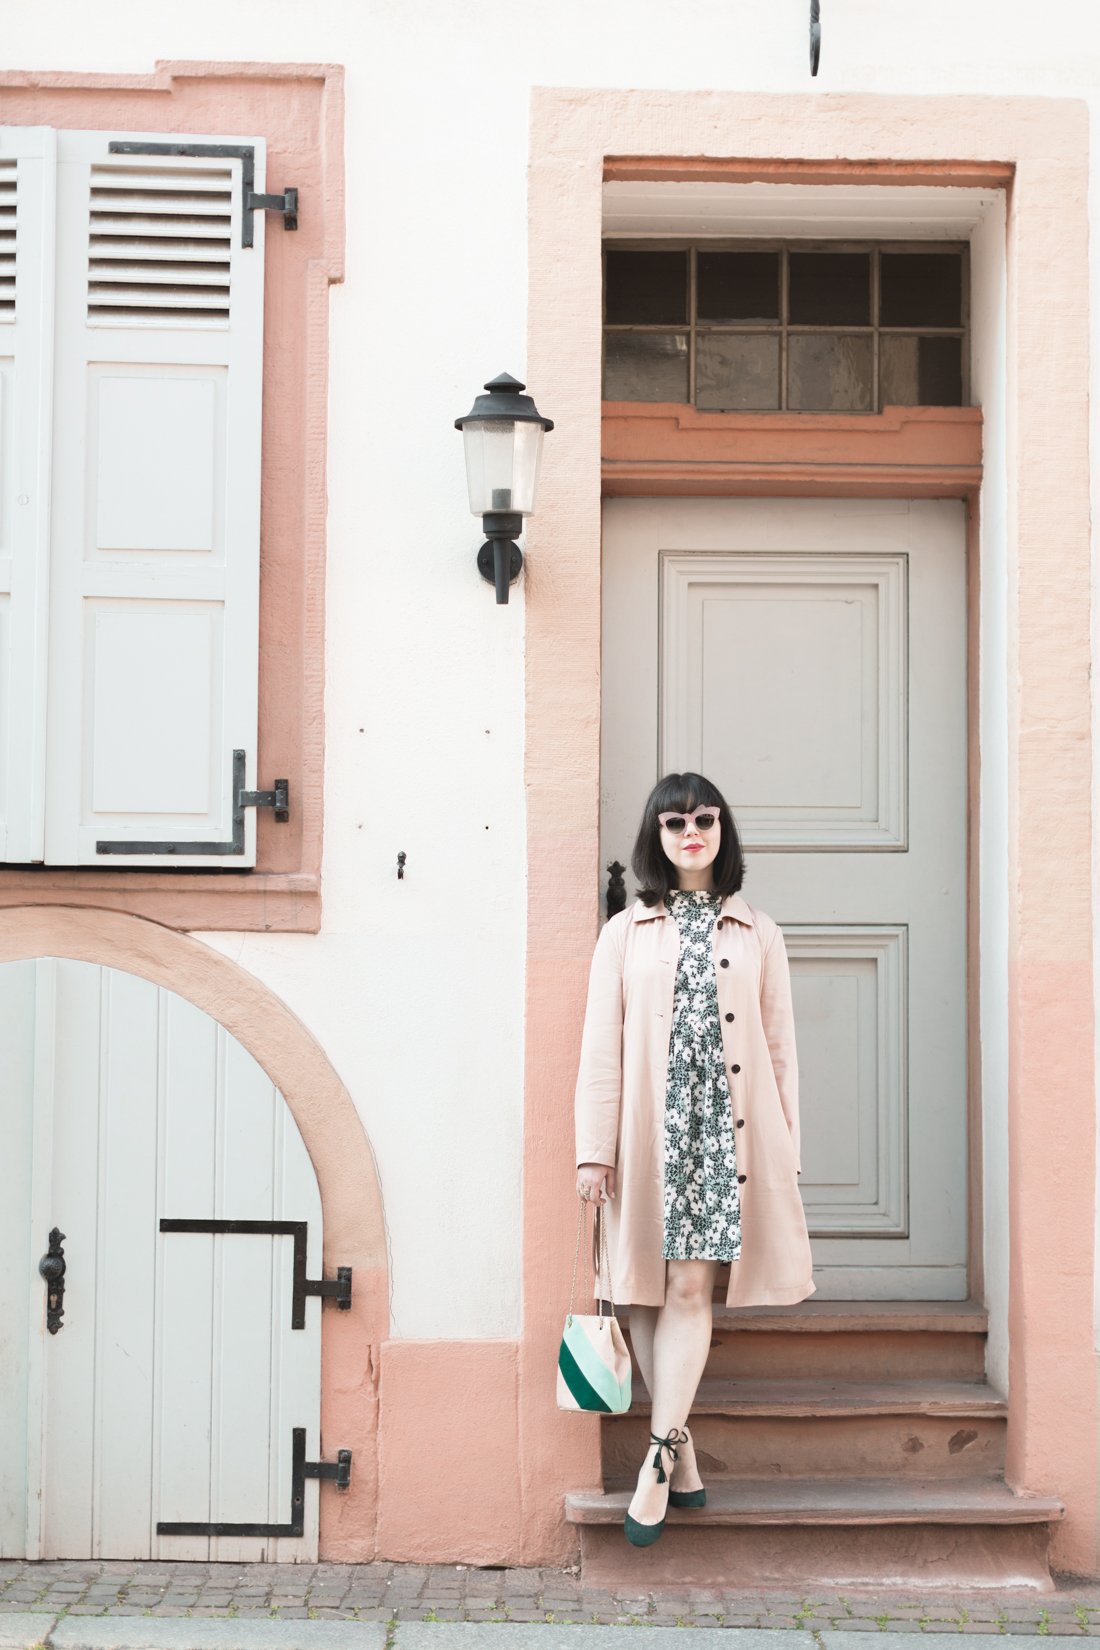 ybd_kelly_love_poppy_dress_bourse_hope_sezane_patchwork_copyright_Pauline_Privez_paulinefashionblog_com-1